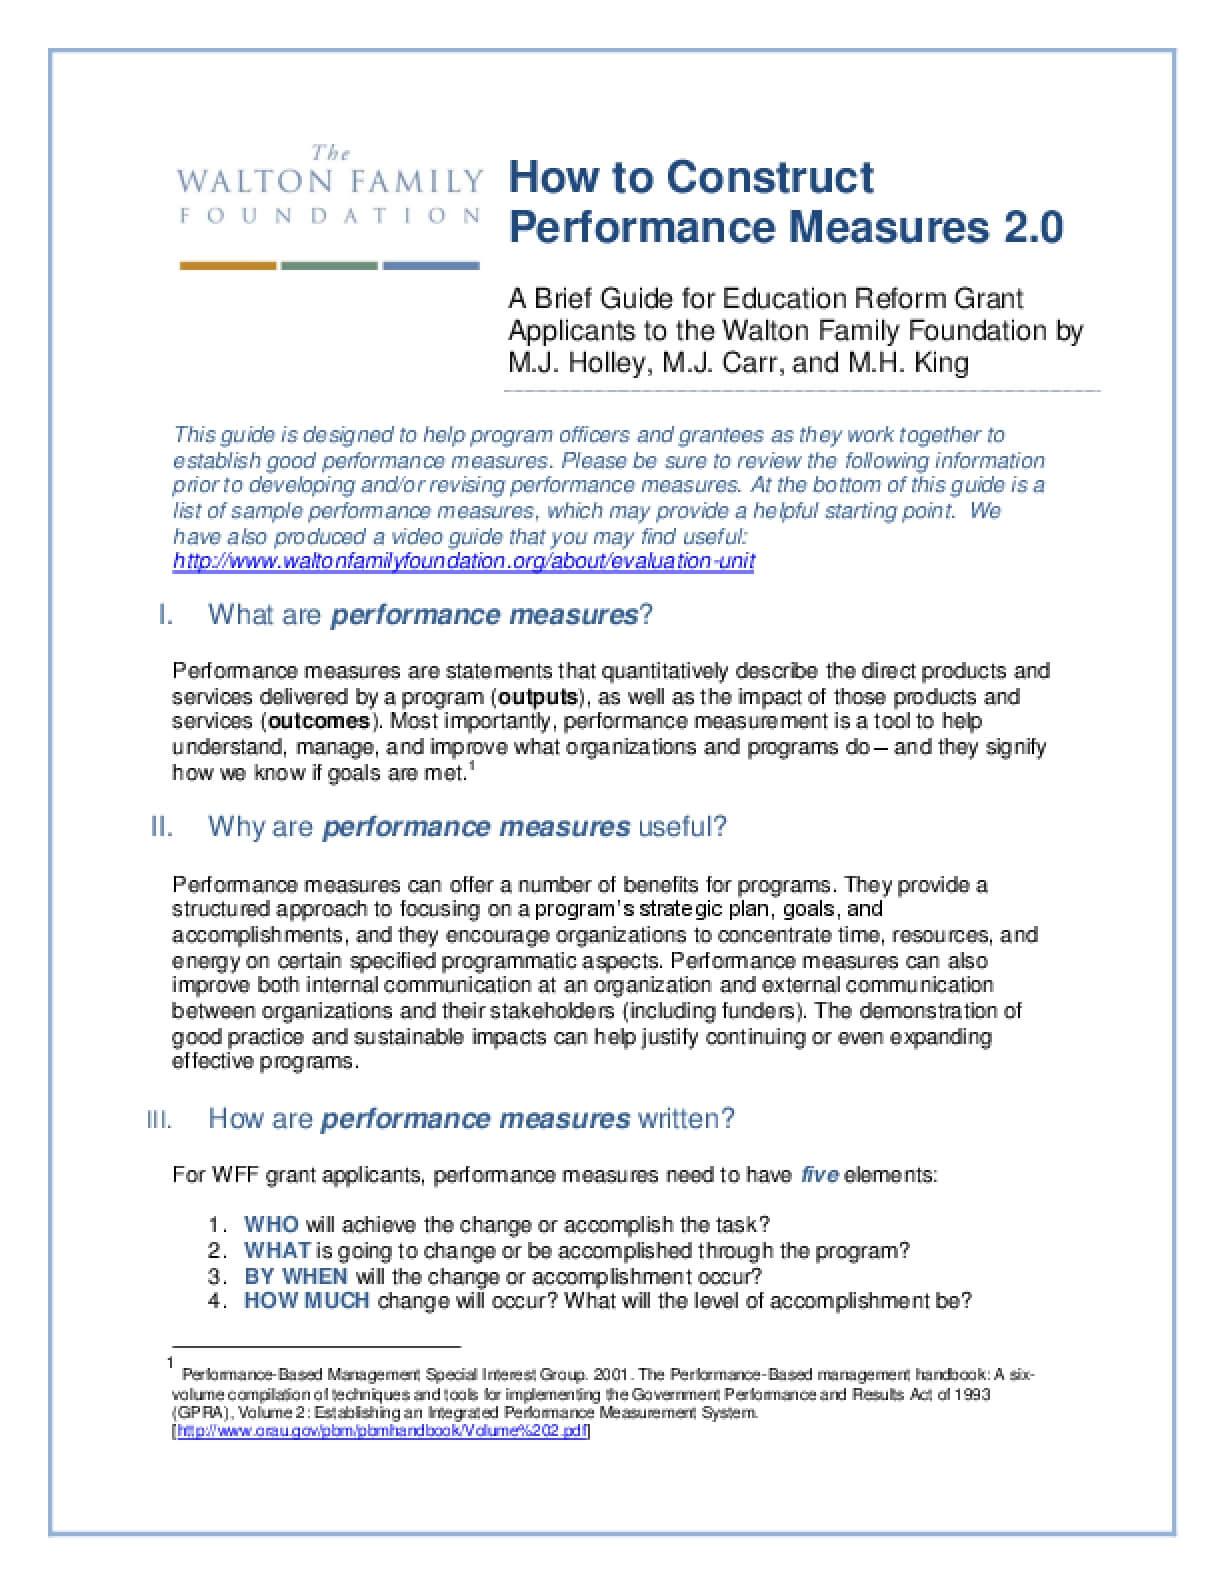 How to Construct Performance Measures 2.0: A Brief Guide for Education Reform Grant Applicants to the Walton Family Foundation